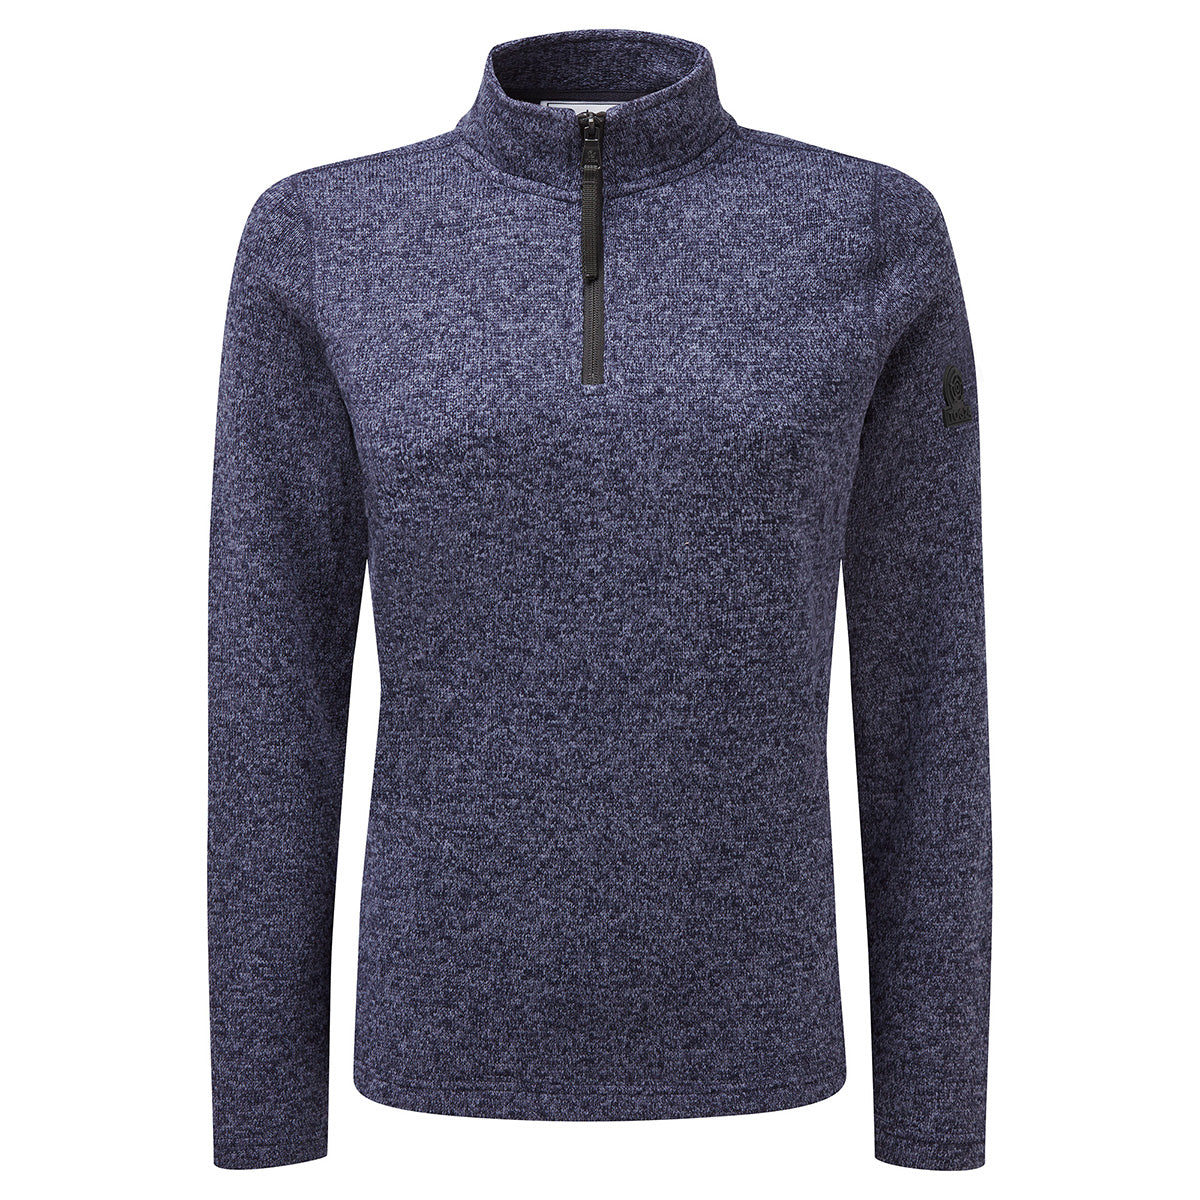 Monza Womens Knitlook Fleece Zip Neck - Navy Marl image 4